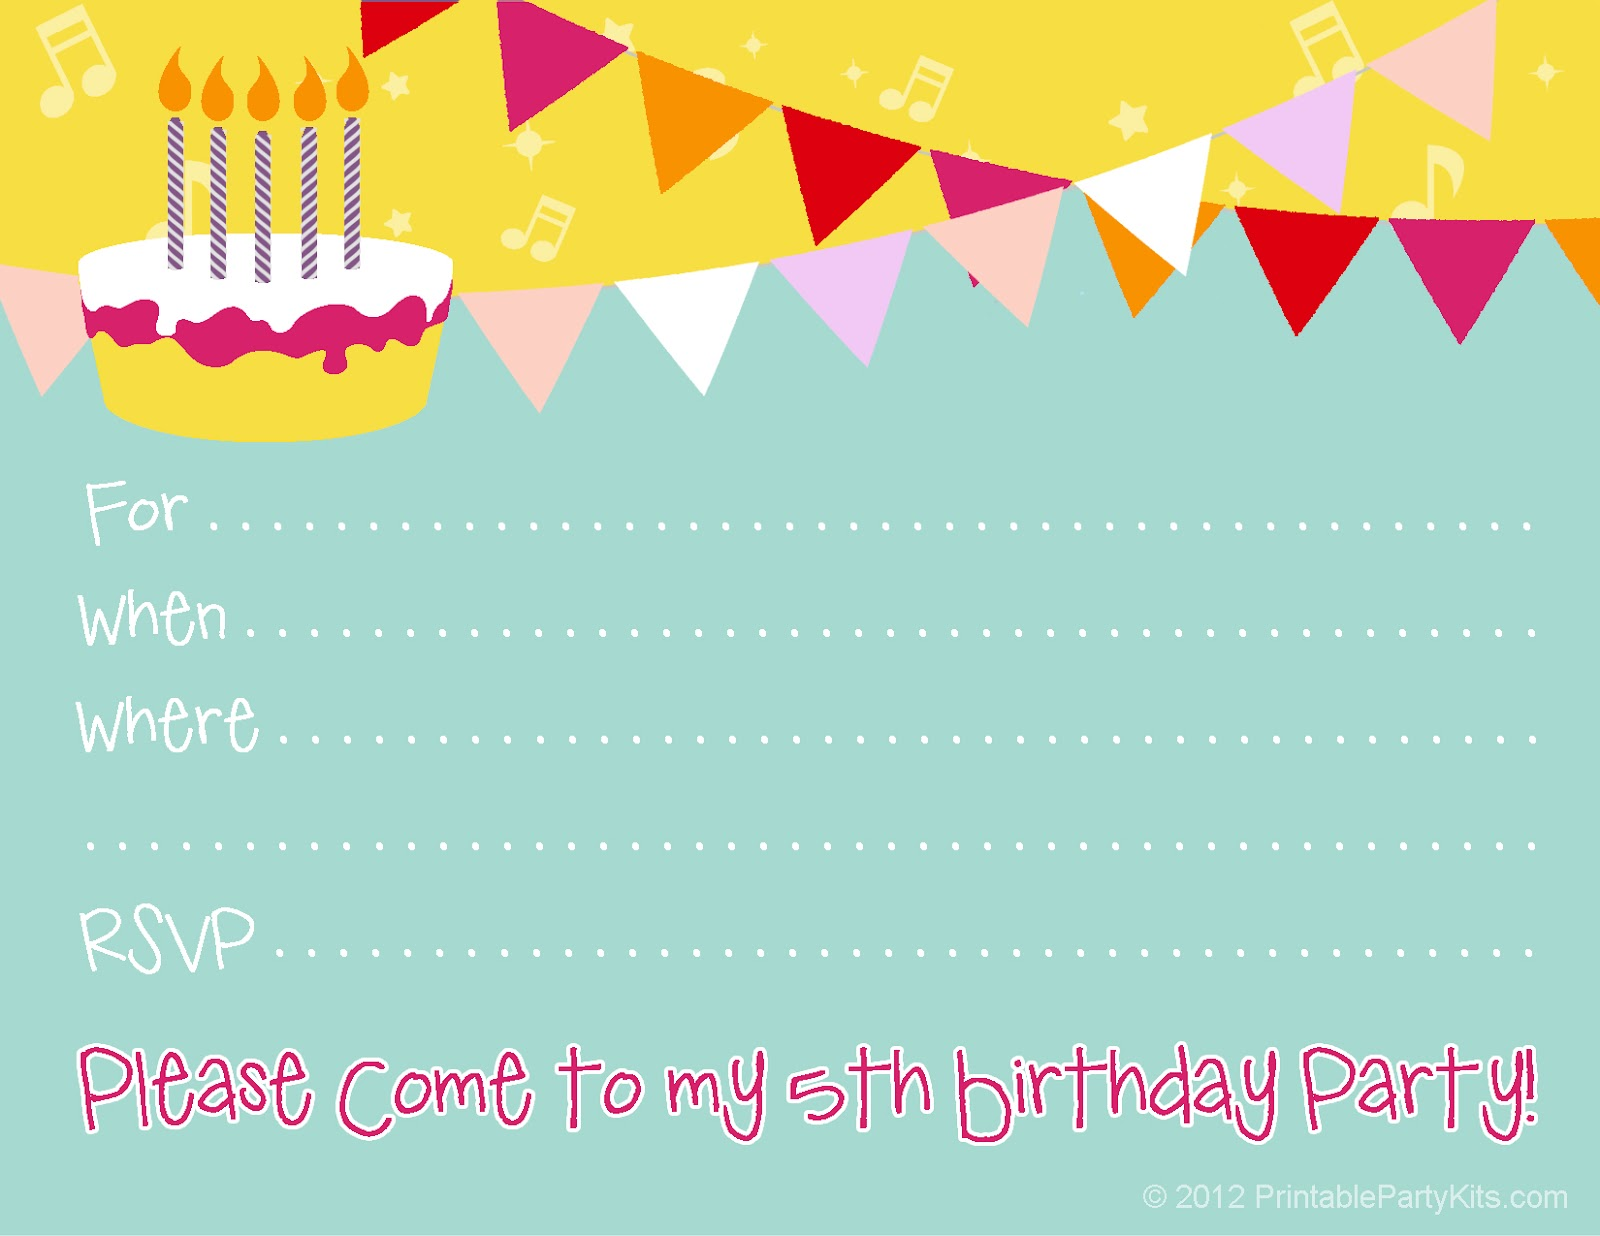 free birthday party invitations - Romeo.landinez.co